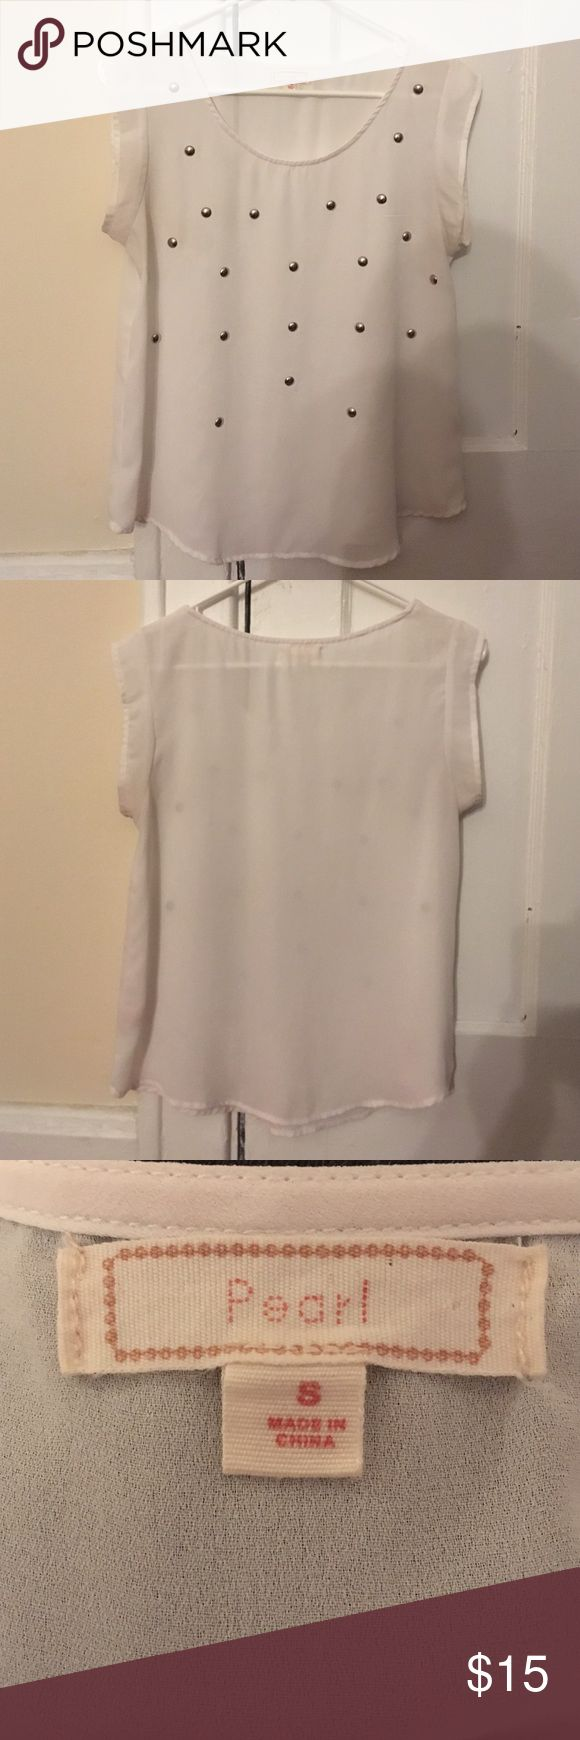 Short sleeve dress shirt Great dress shirt! Goes well with anything. Sheer white fabric with metal studs Pearl Izumi Tops Blouses